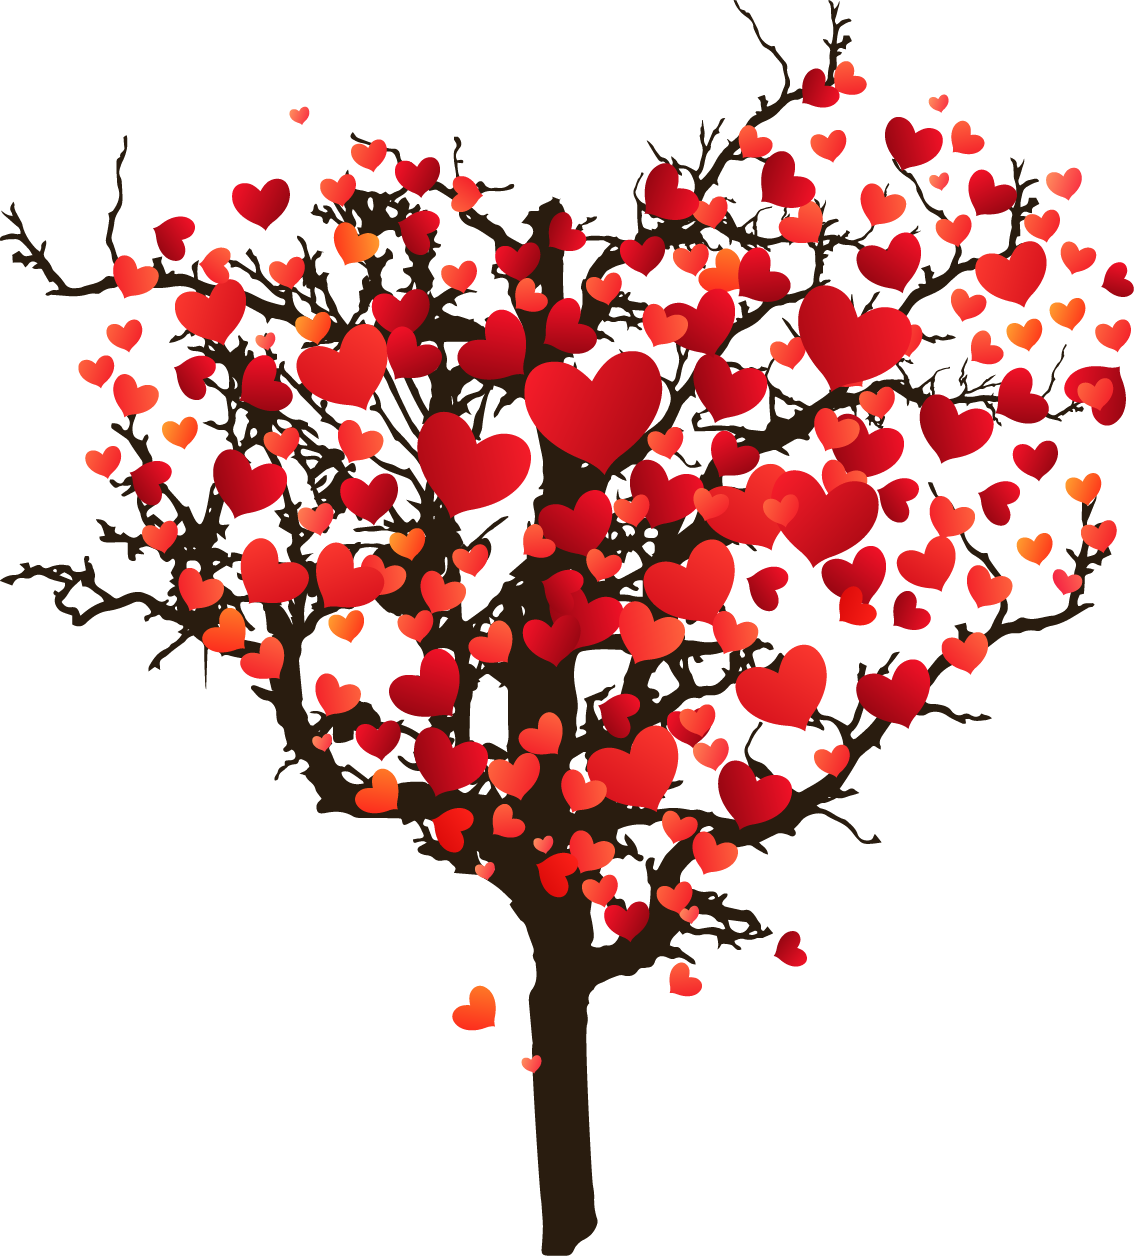 Tree clipart valentines day. Photography illustration cartoon painted